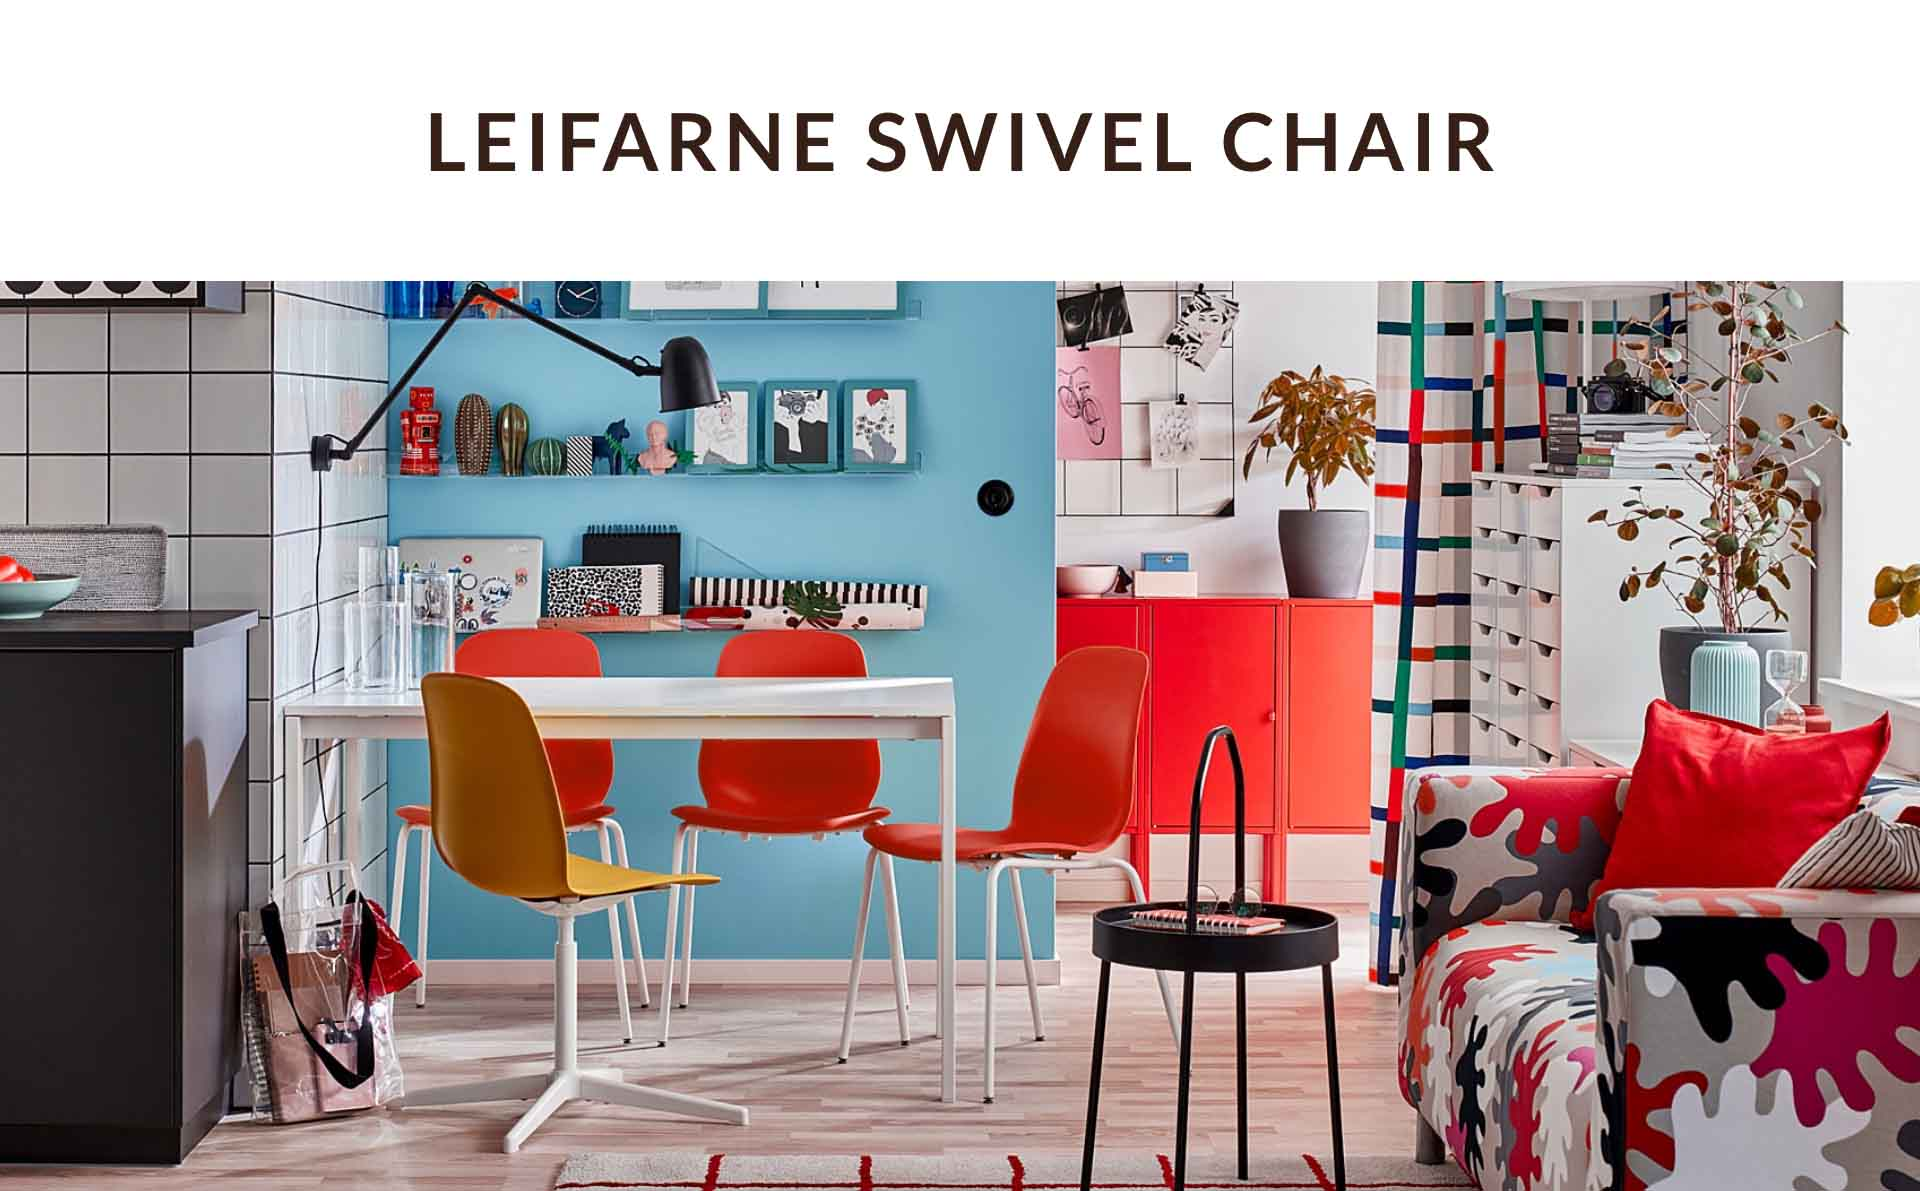 Leifarne Swivel chair | invisiblebed.com